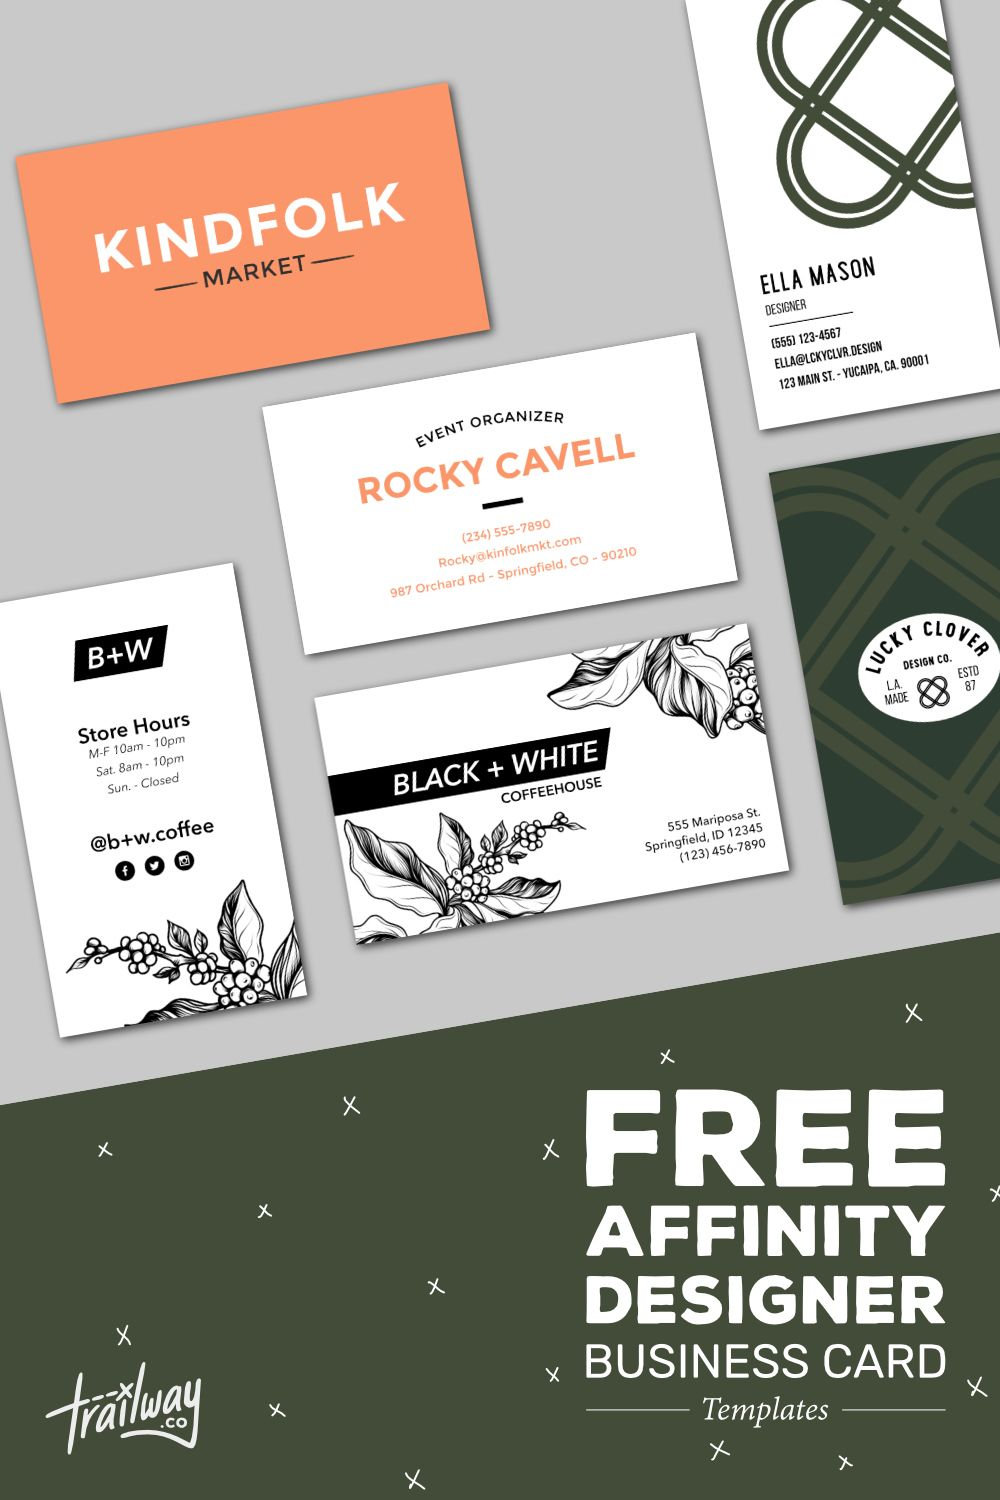 Free Affinity Designer Business Card Templates Beautiful Business Card Business Card Template Business Card Graphic